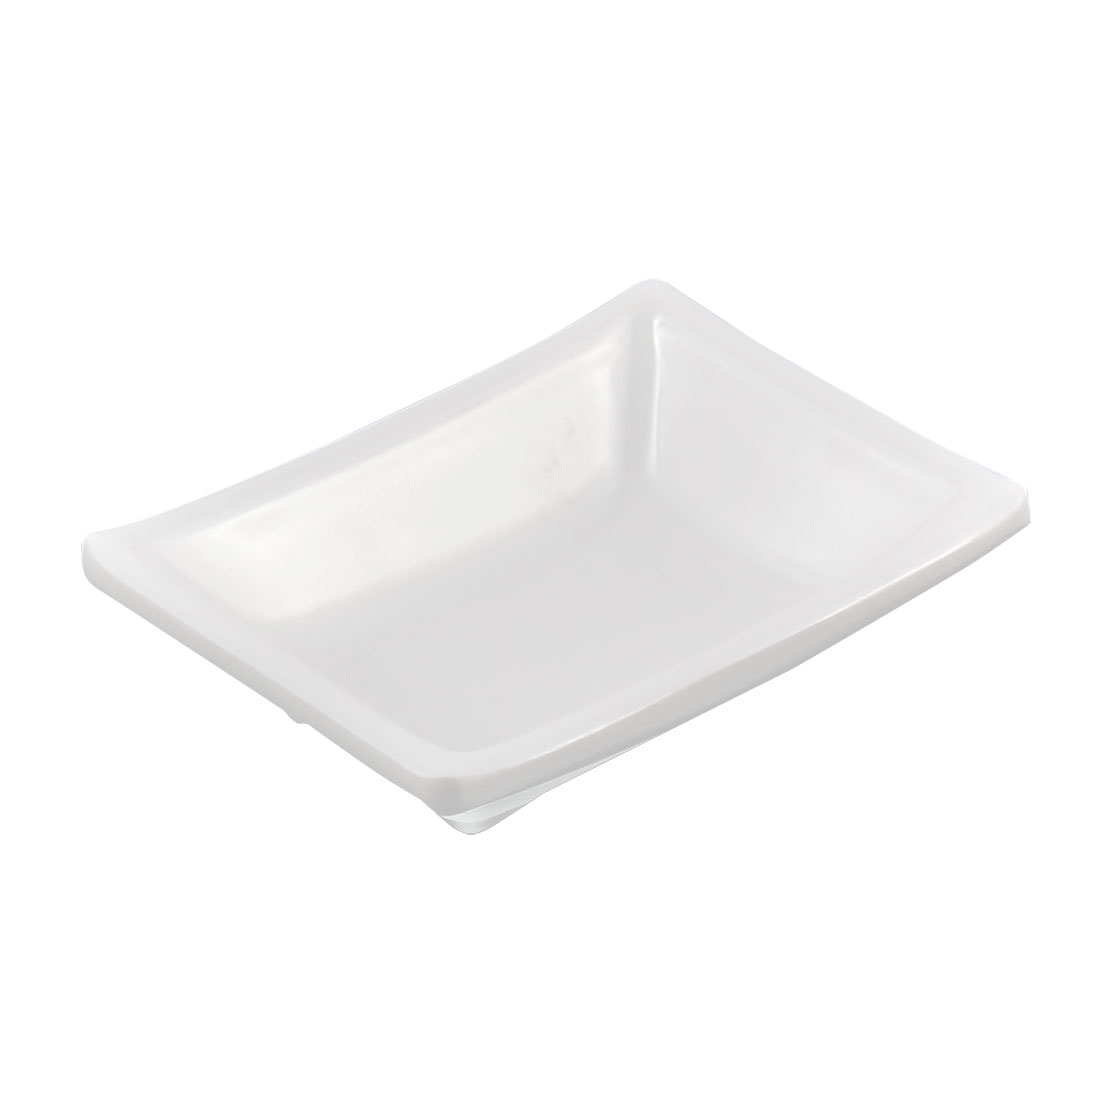 Plastic Sushi Wasabi Condiment Serving Dipping Dish Plate White